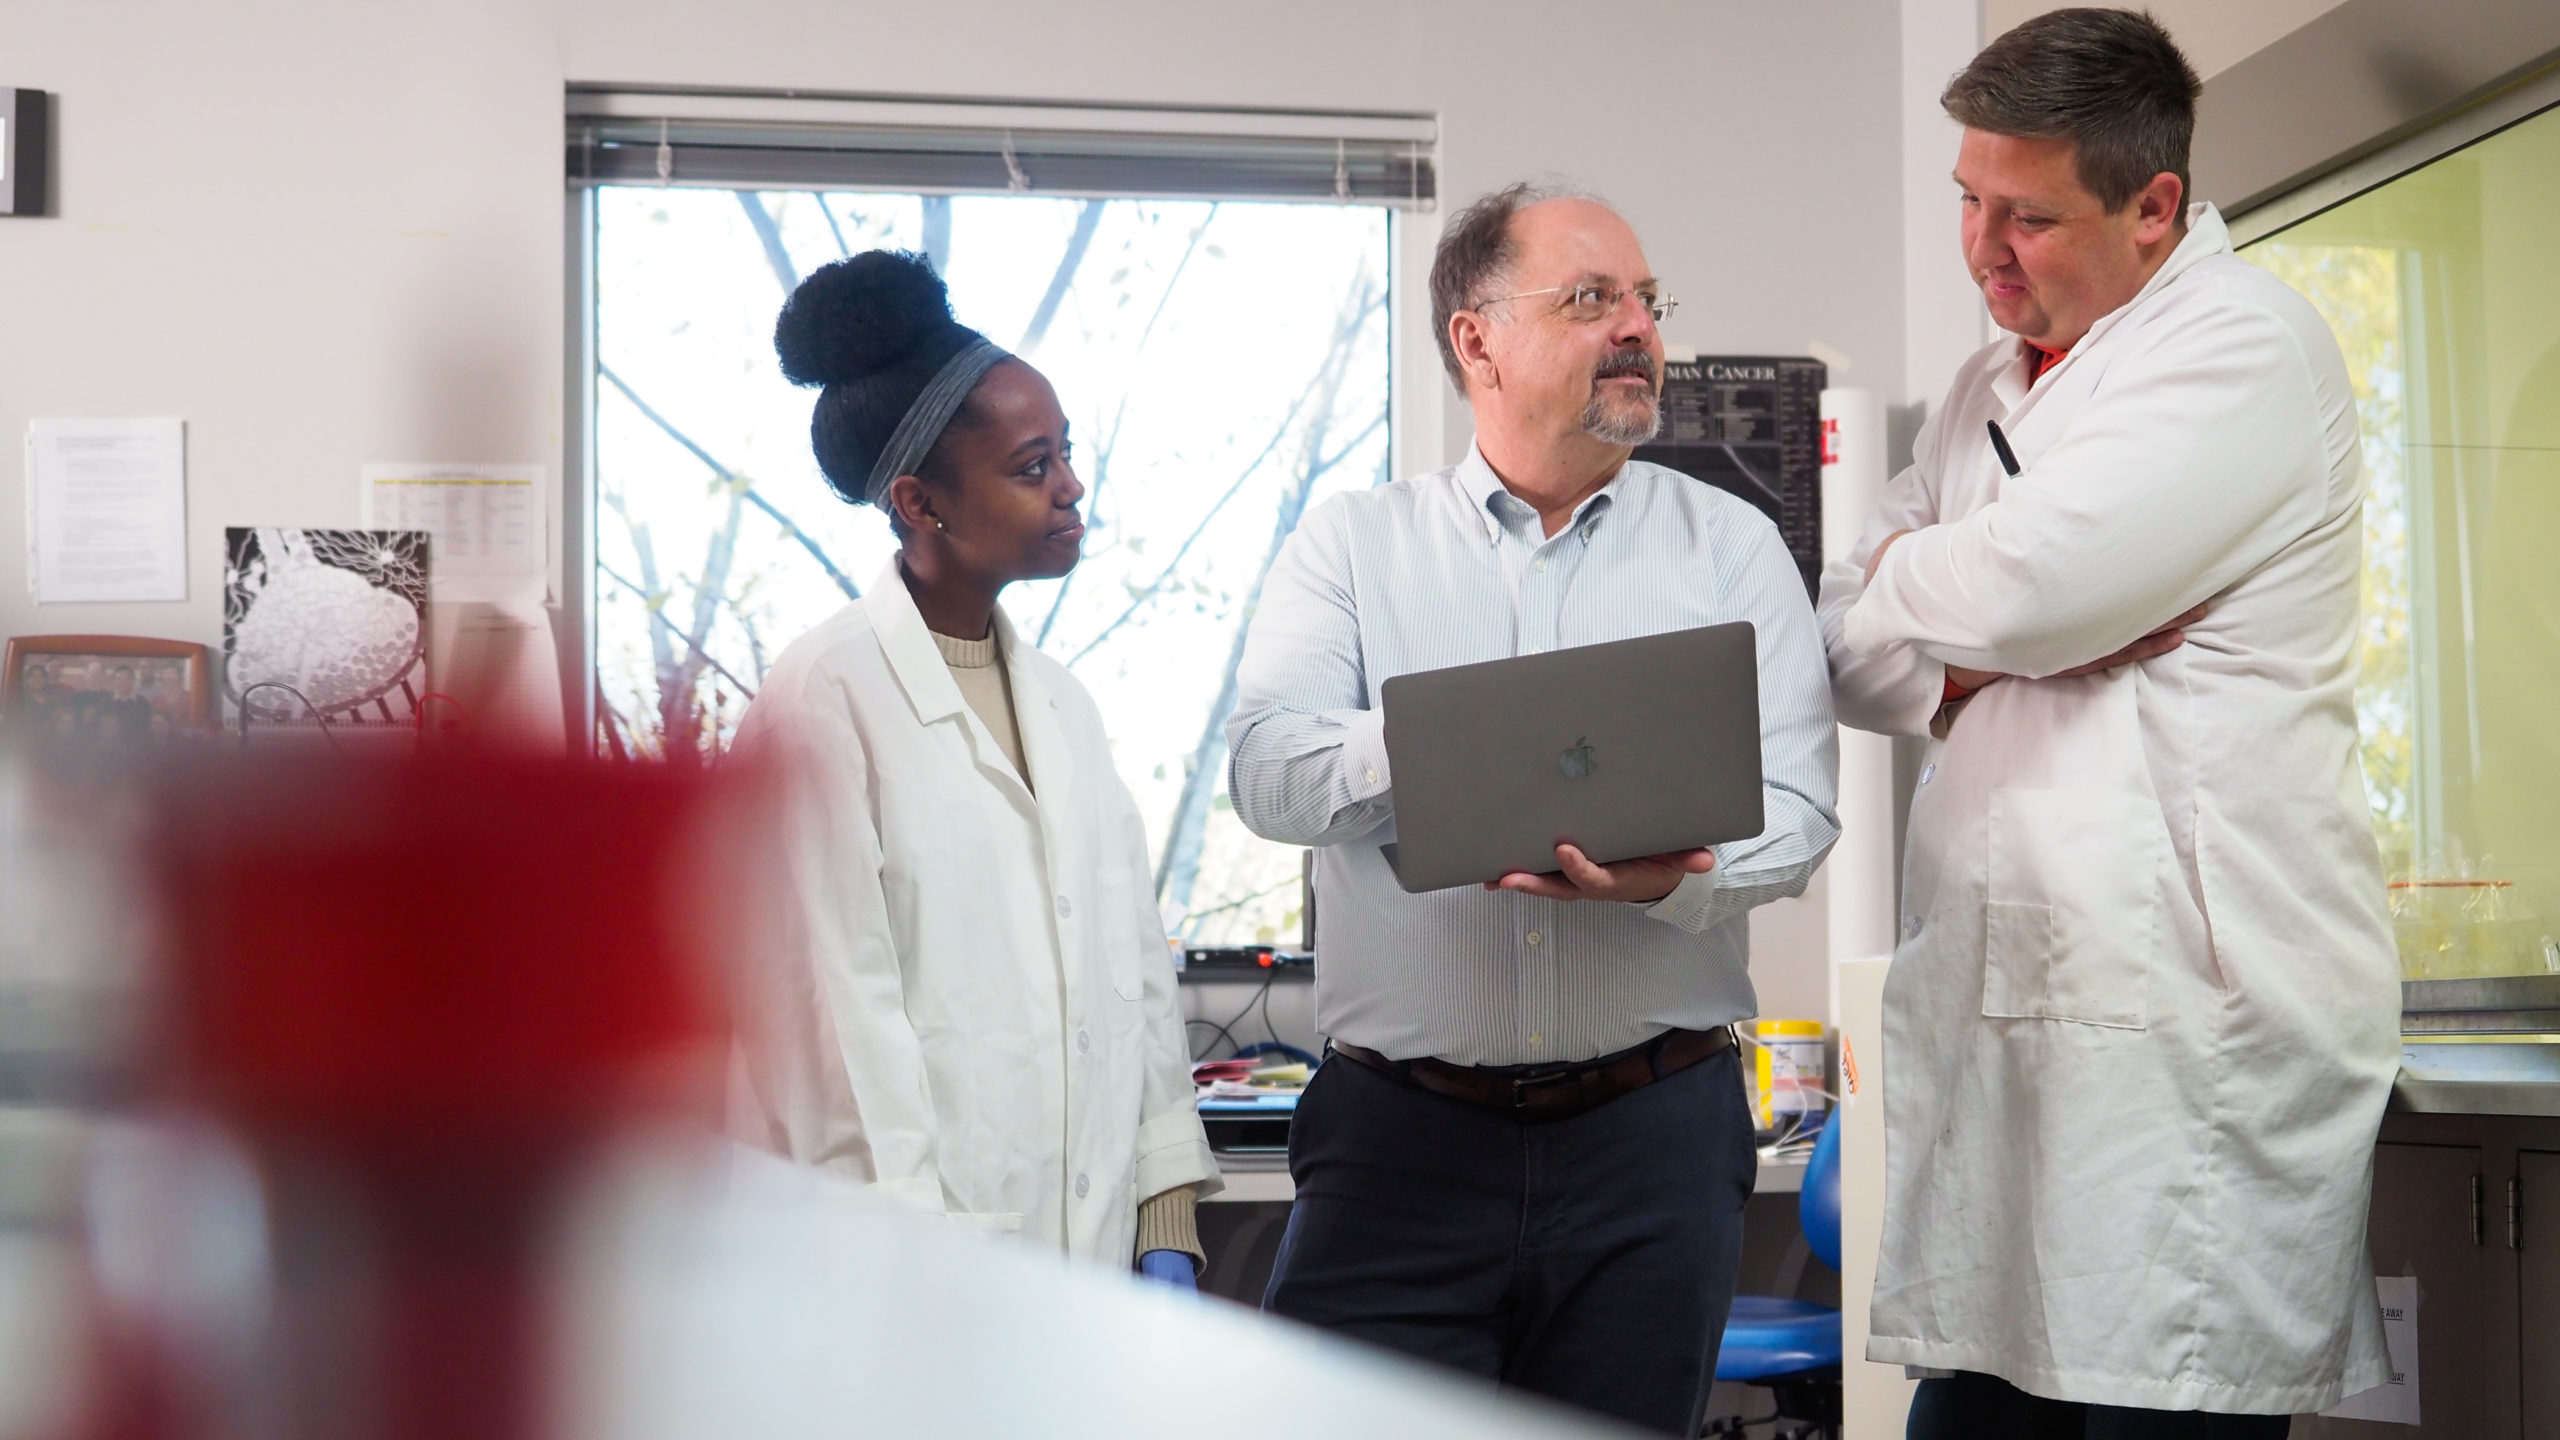 Rob Smart and students discuss research in his lab